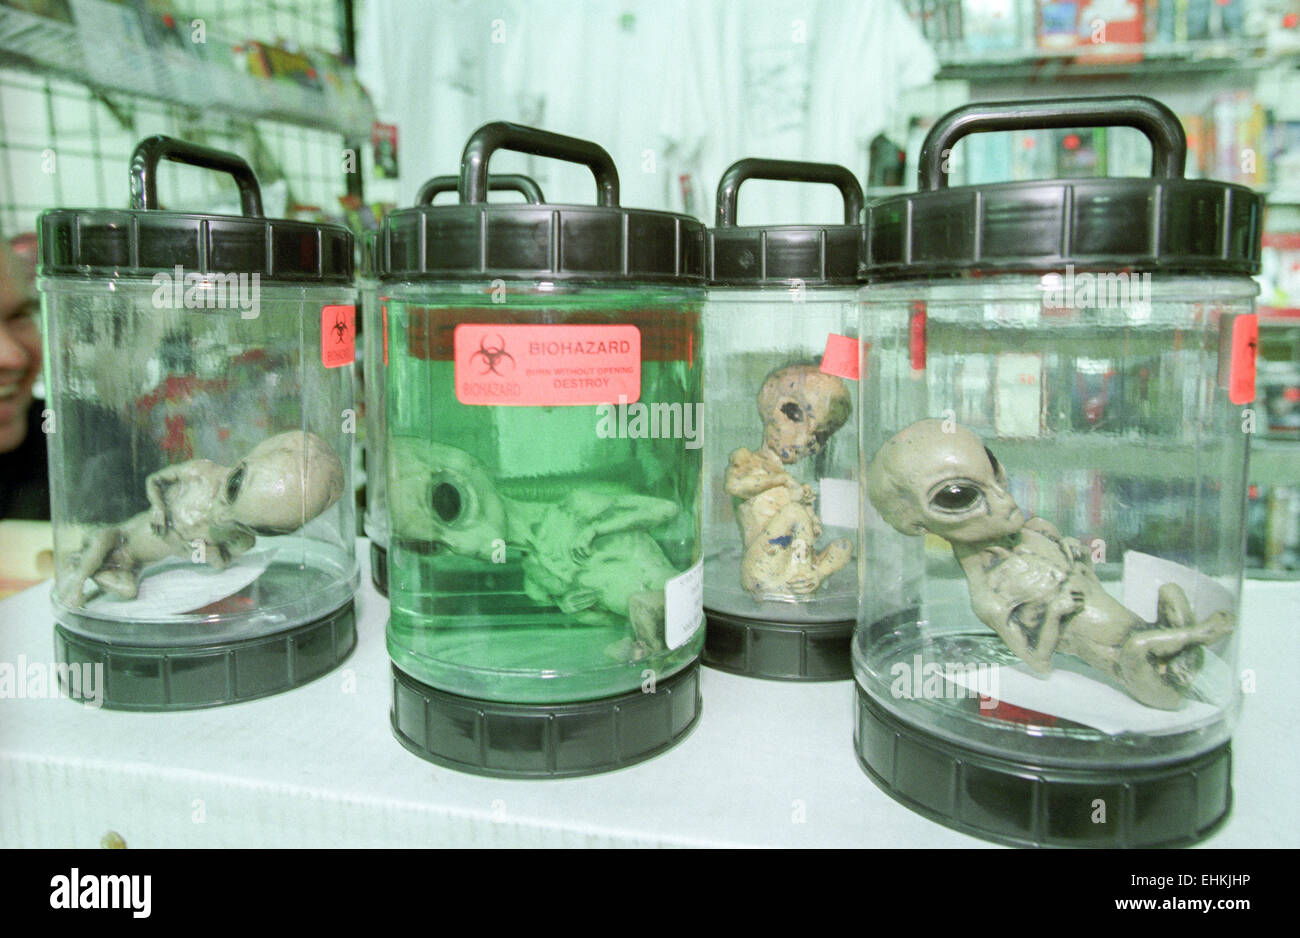 LAS VEGAS, NV – MARCH 15: Alien merchandise at X-Files convention in Las Vegas, Nevada on March 15, 1998. - Stock Image